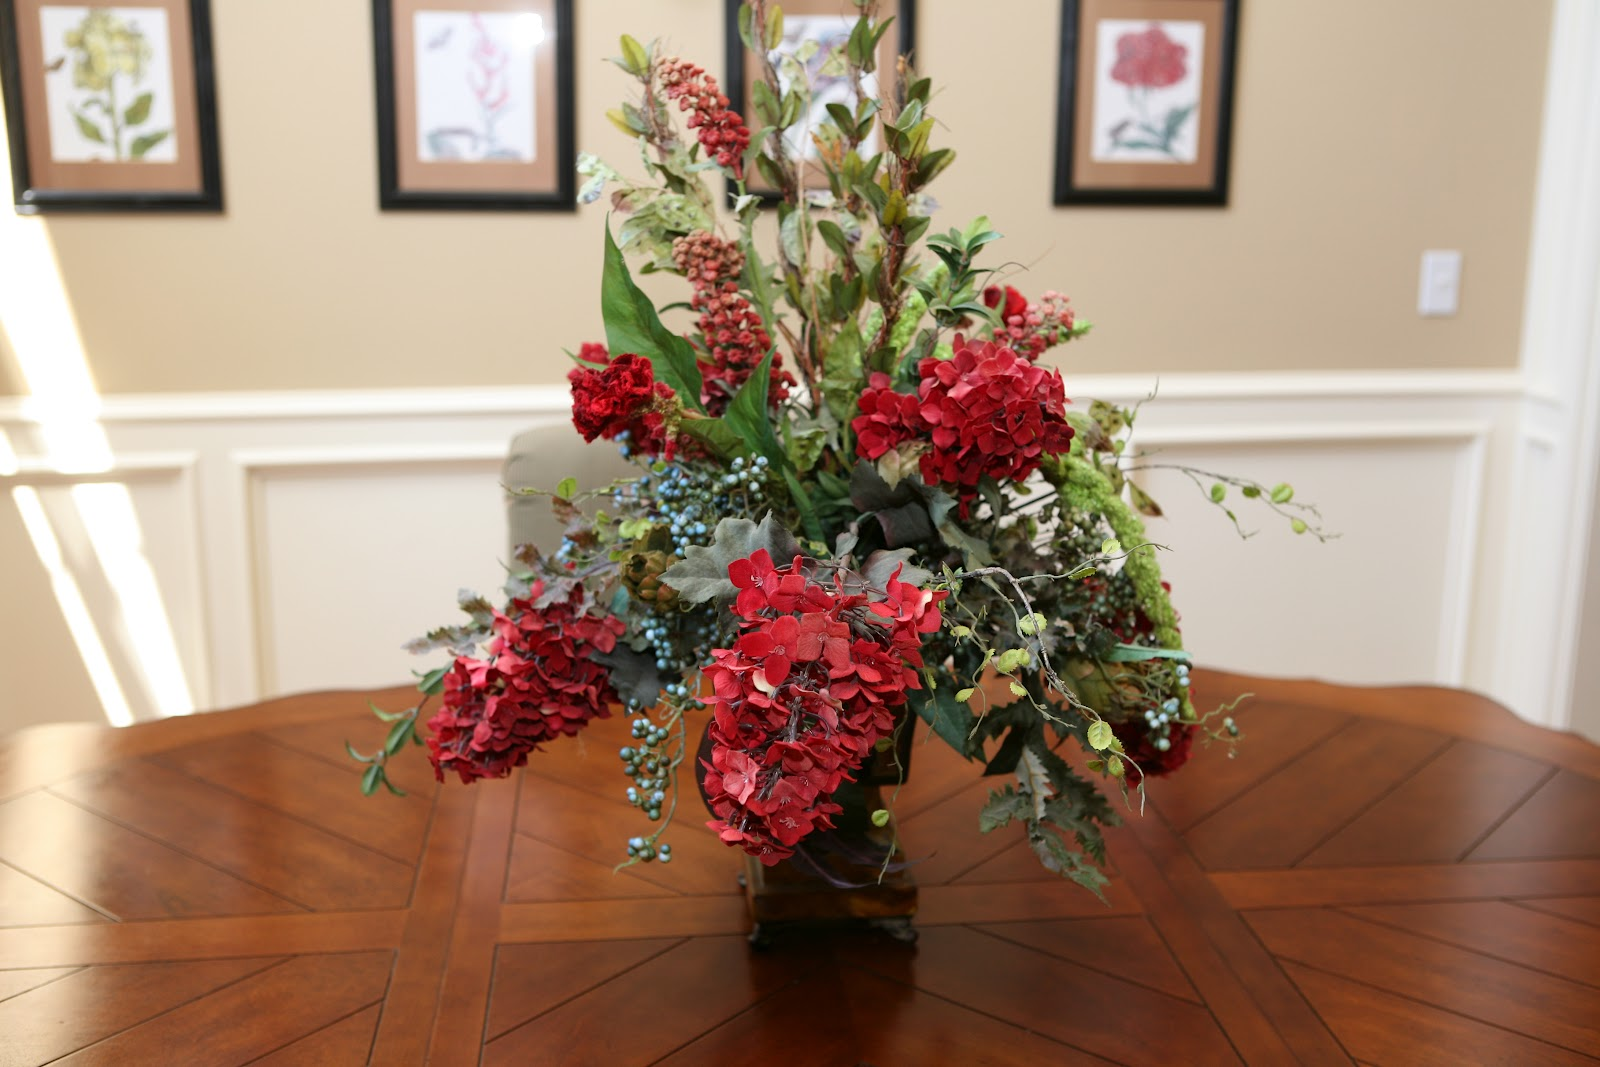 Kelly's Korner: Show us your life - How do you decorate ...